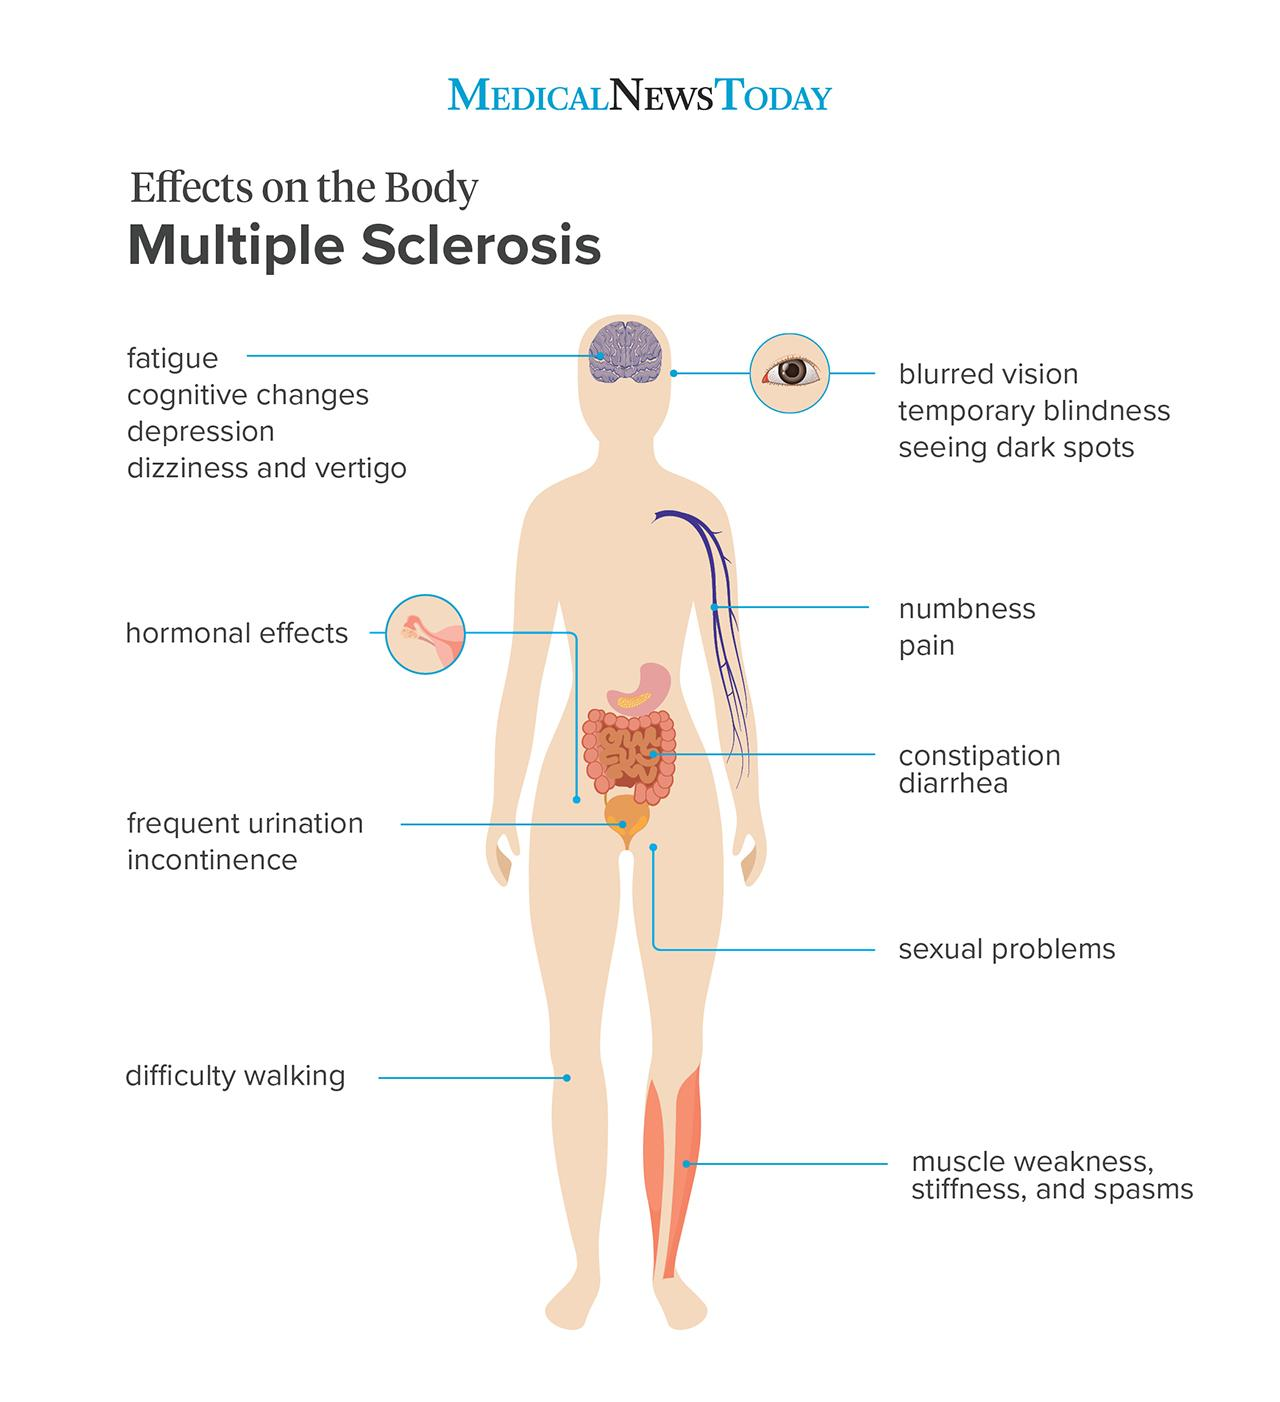 Effects on the body MS <br>Image credit: Stephen Kelly, 2019</br>